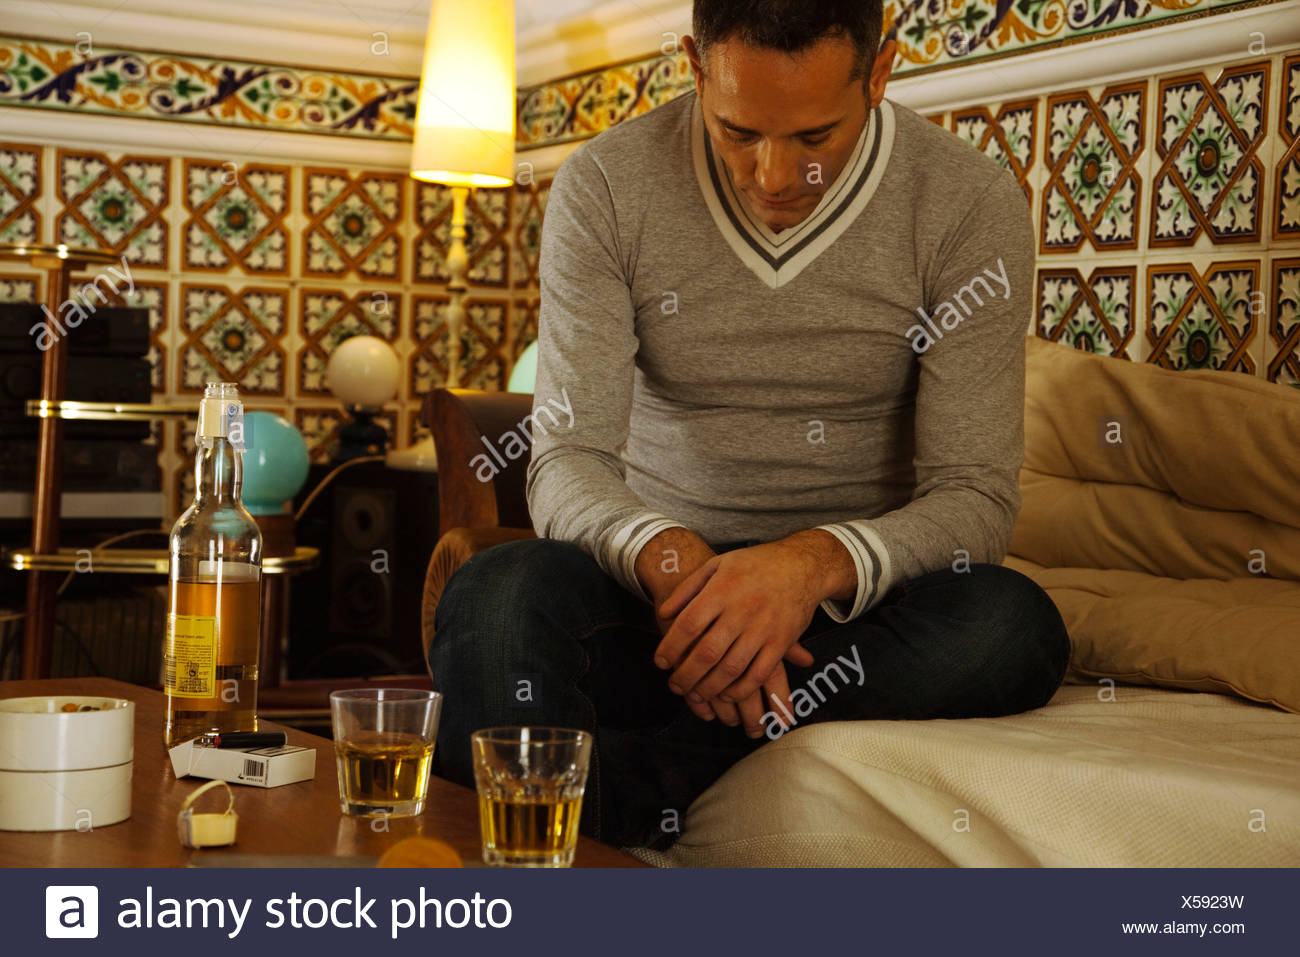 Depressed man sitting with alcohol on table - Stock Image